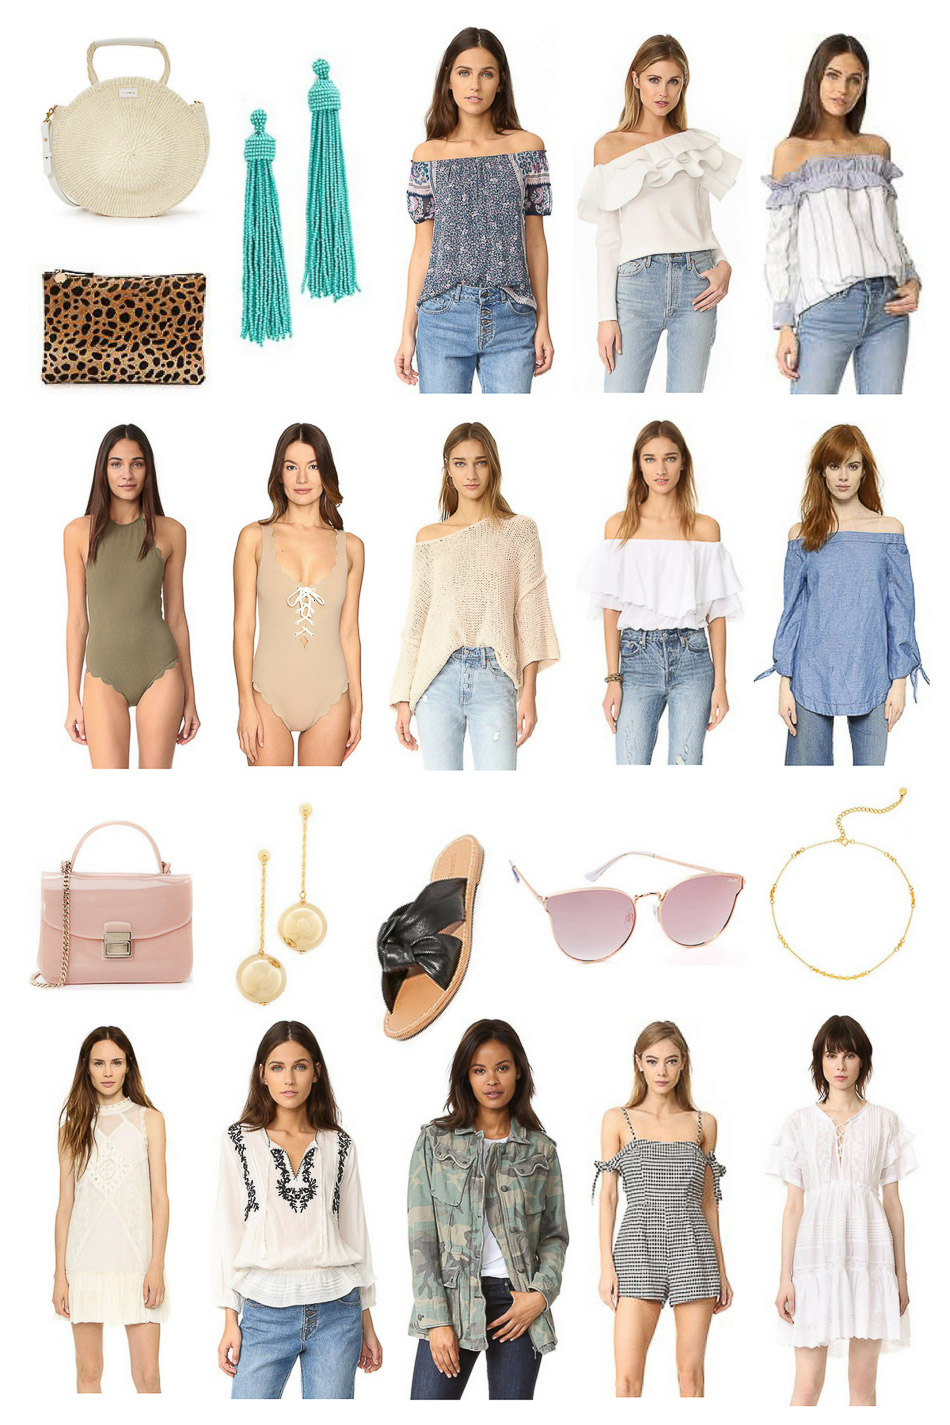 Best of the Shopbop Spring Sale as curated by AGlamLifestyle blogger Amanda